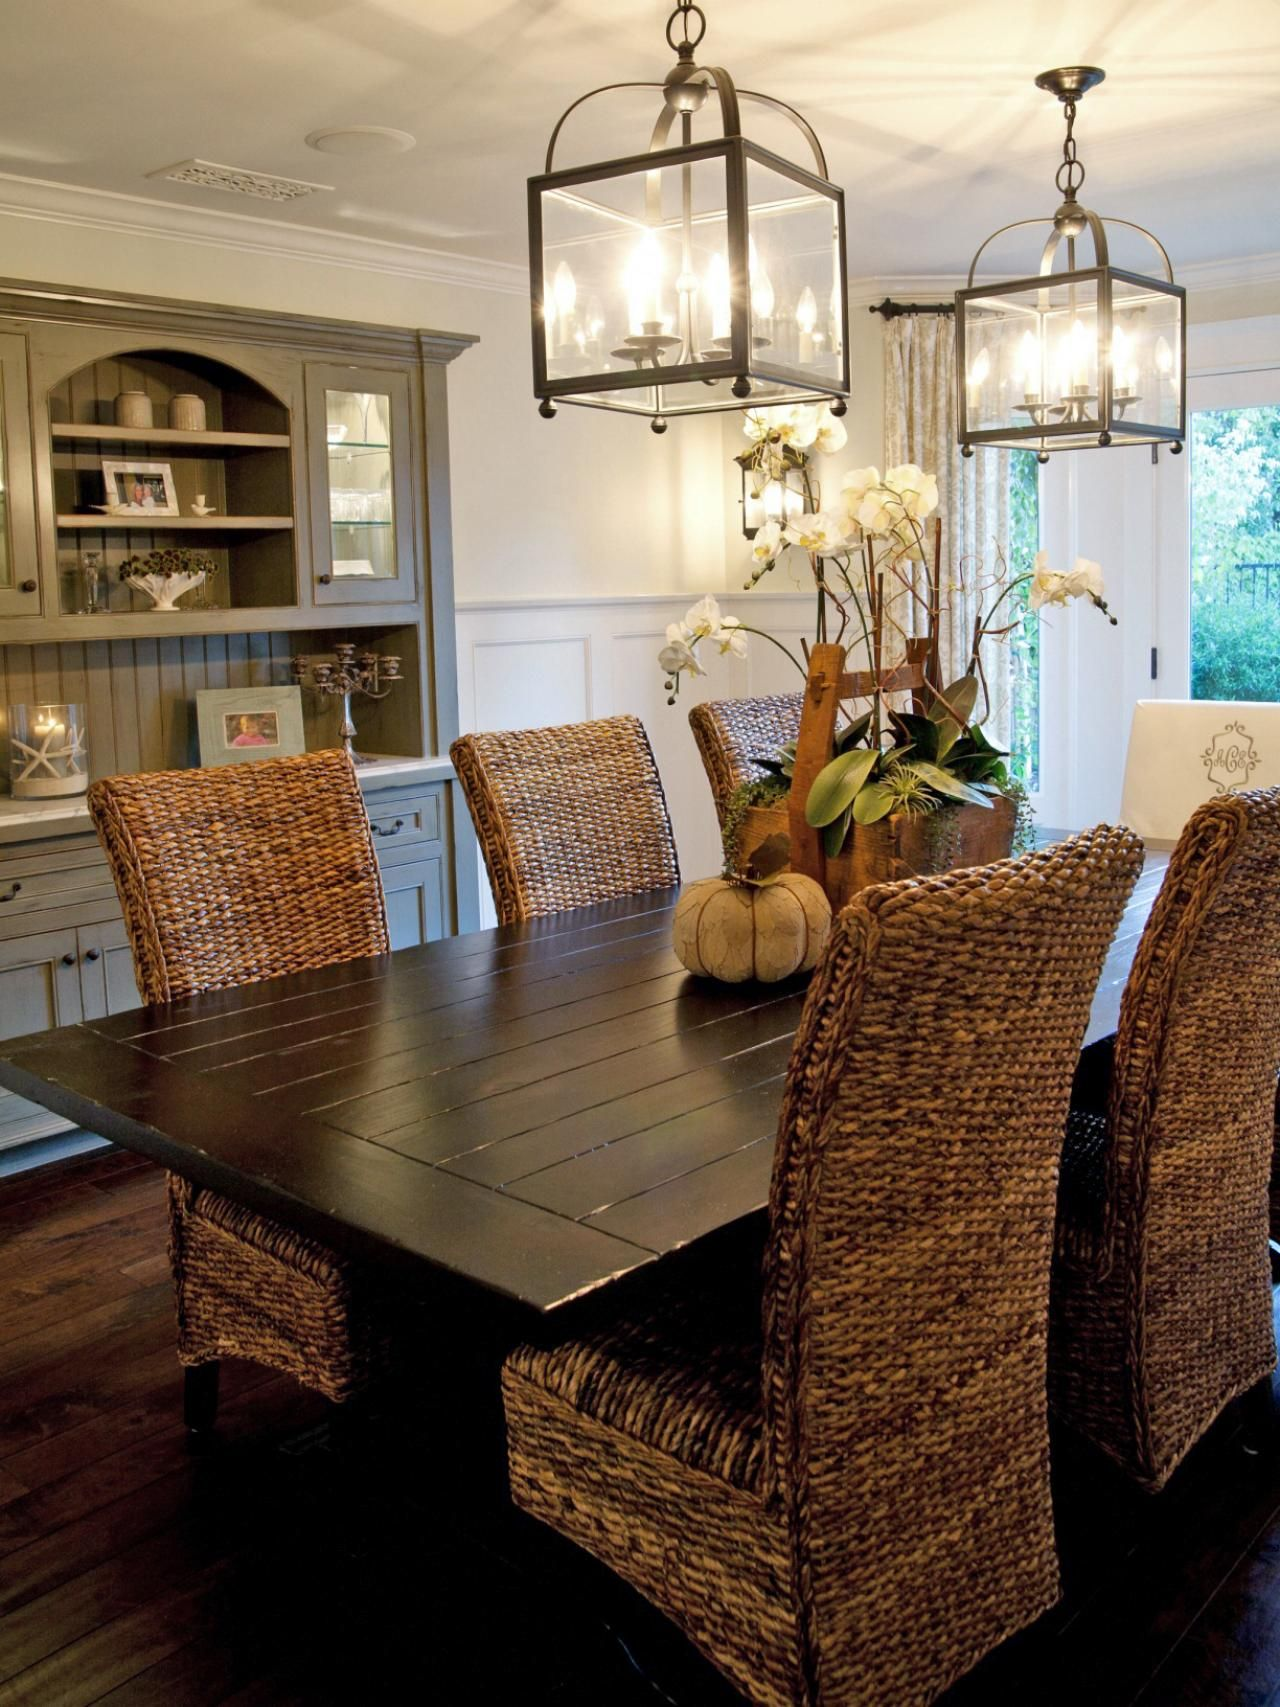 Coastal Kitchen and Dining Room Pictures | Hgtv, Coastal inspired ...